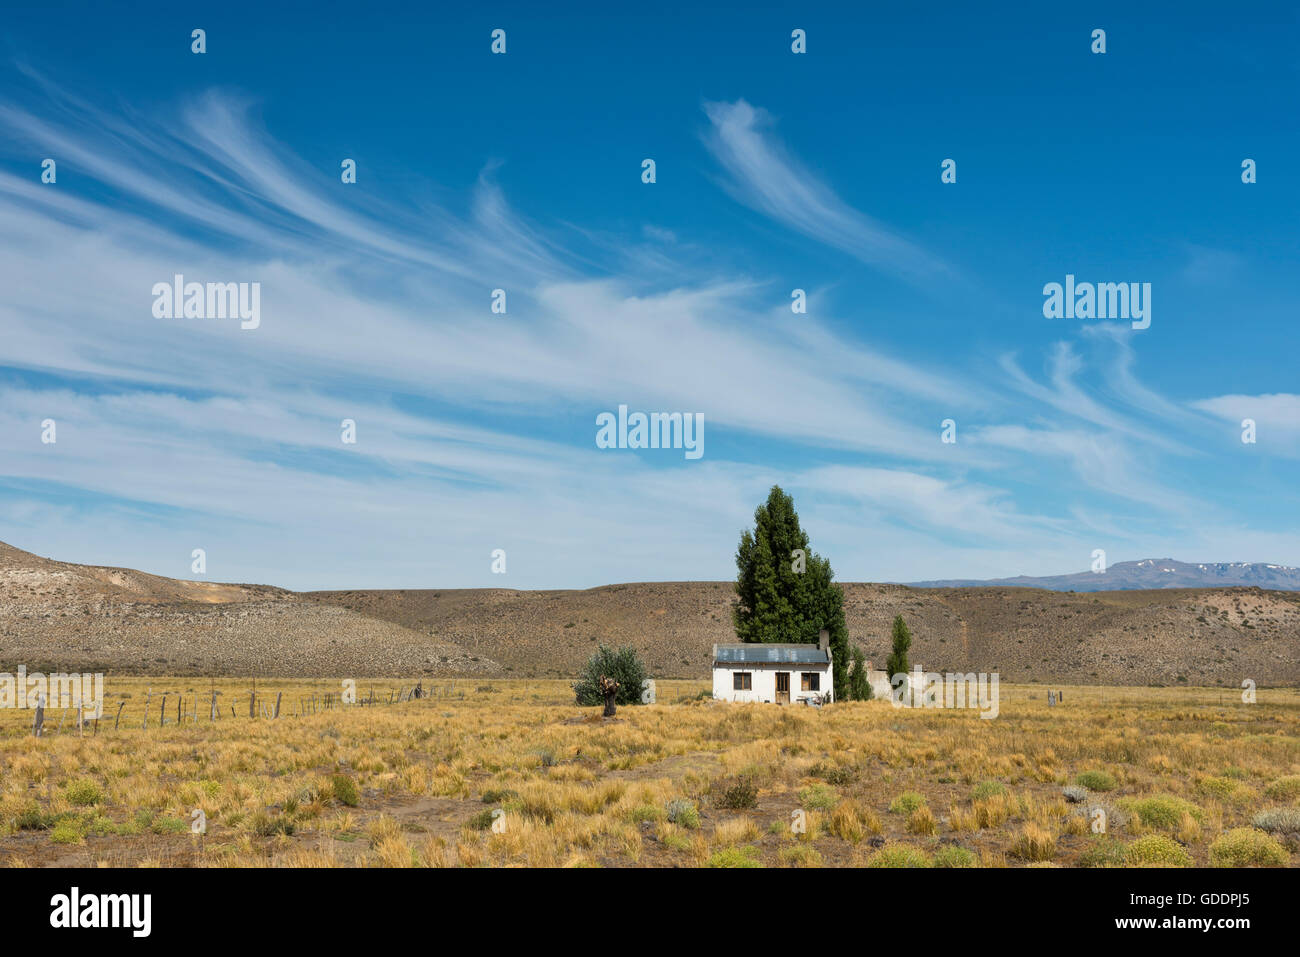 South America,Argentina,Chubut,Patagonia,house in the Pampa - Stock Image